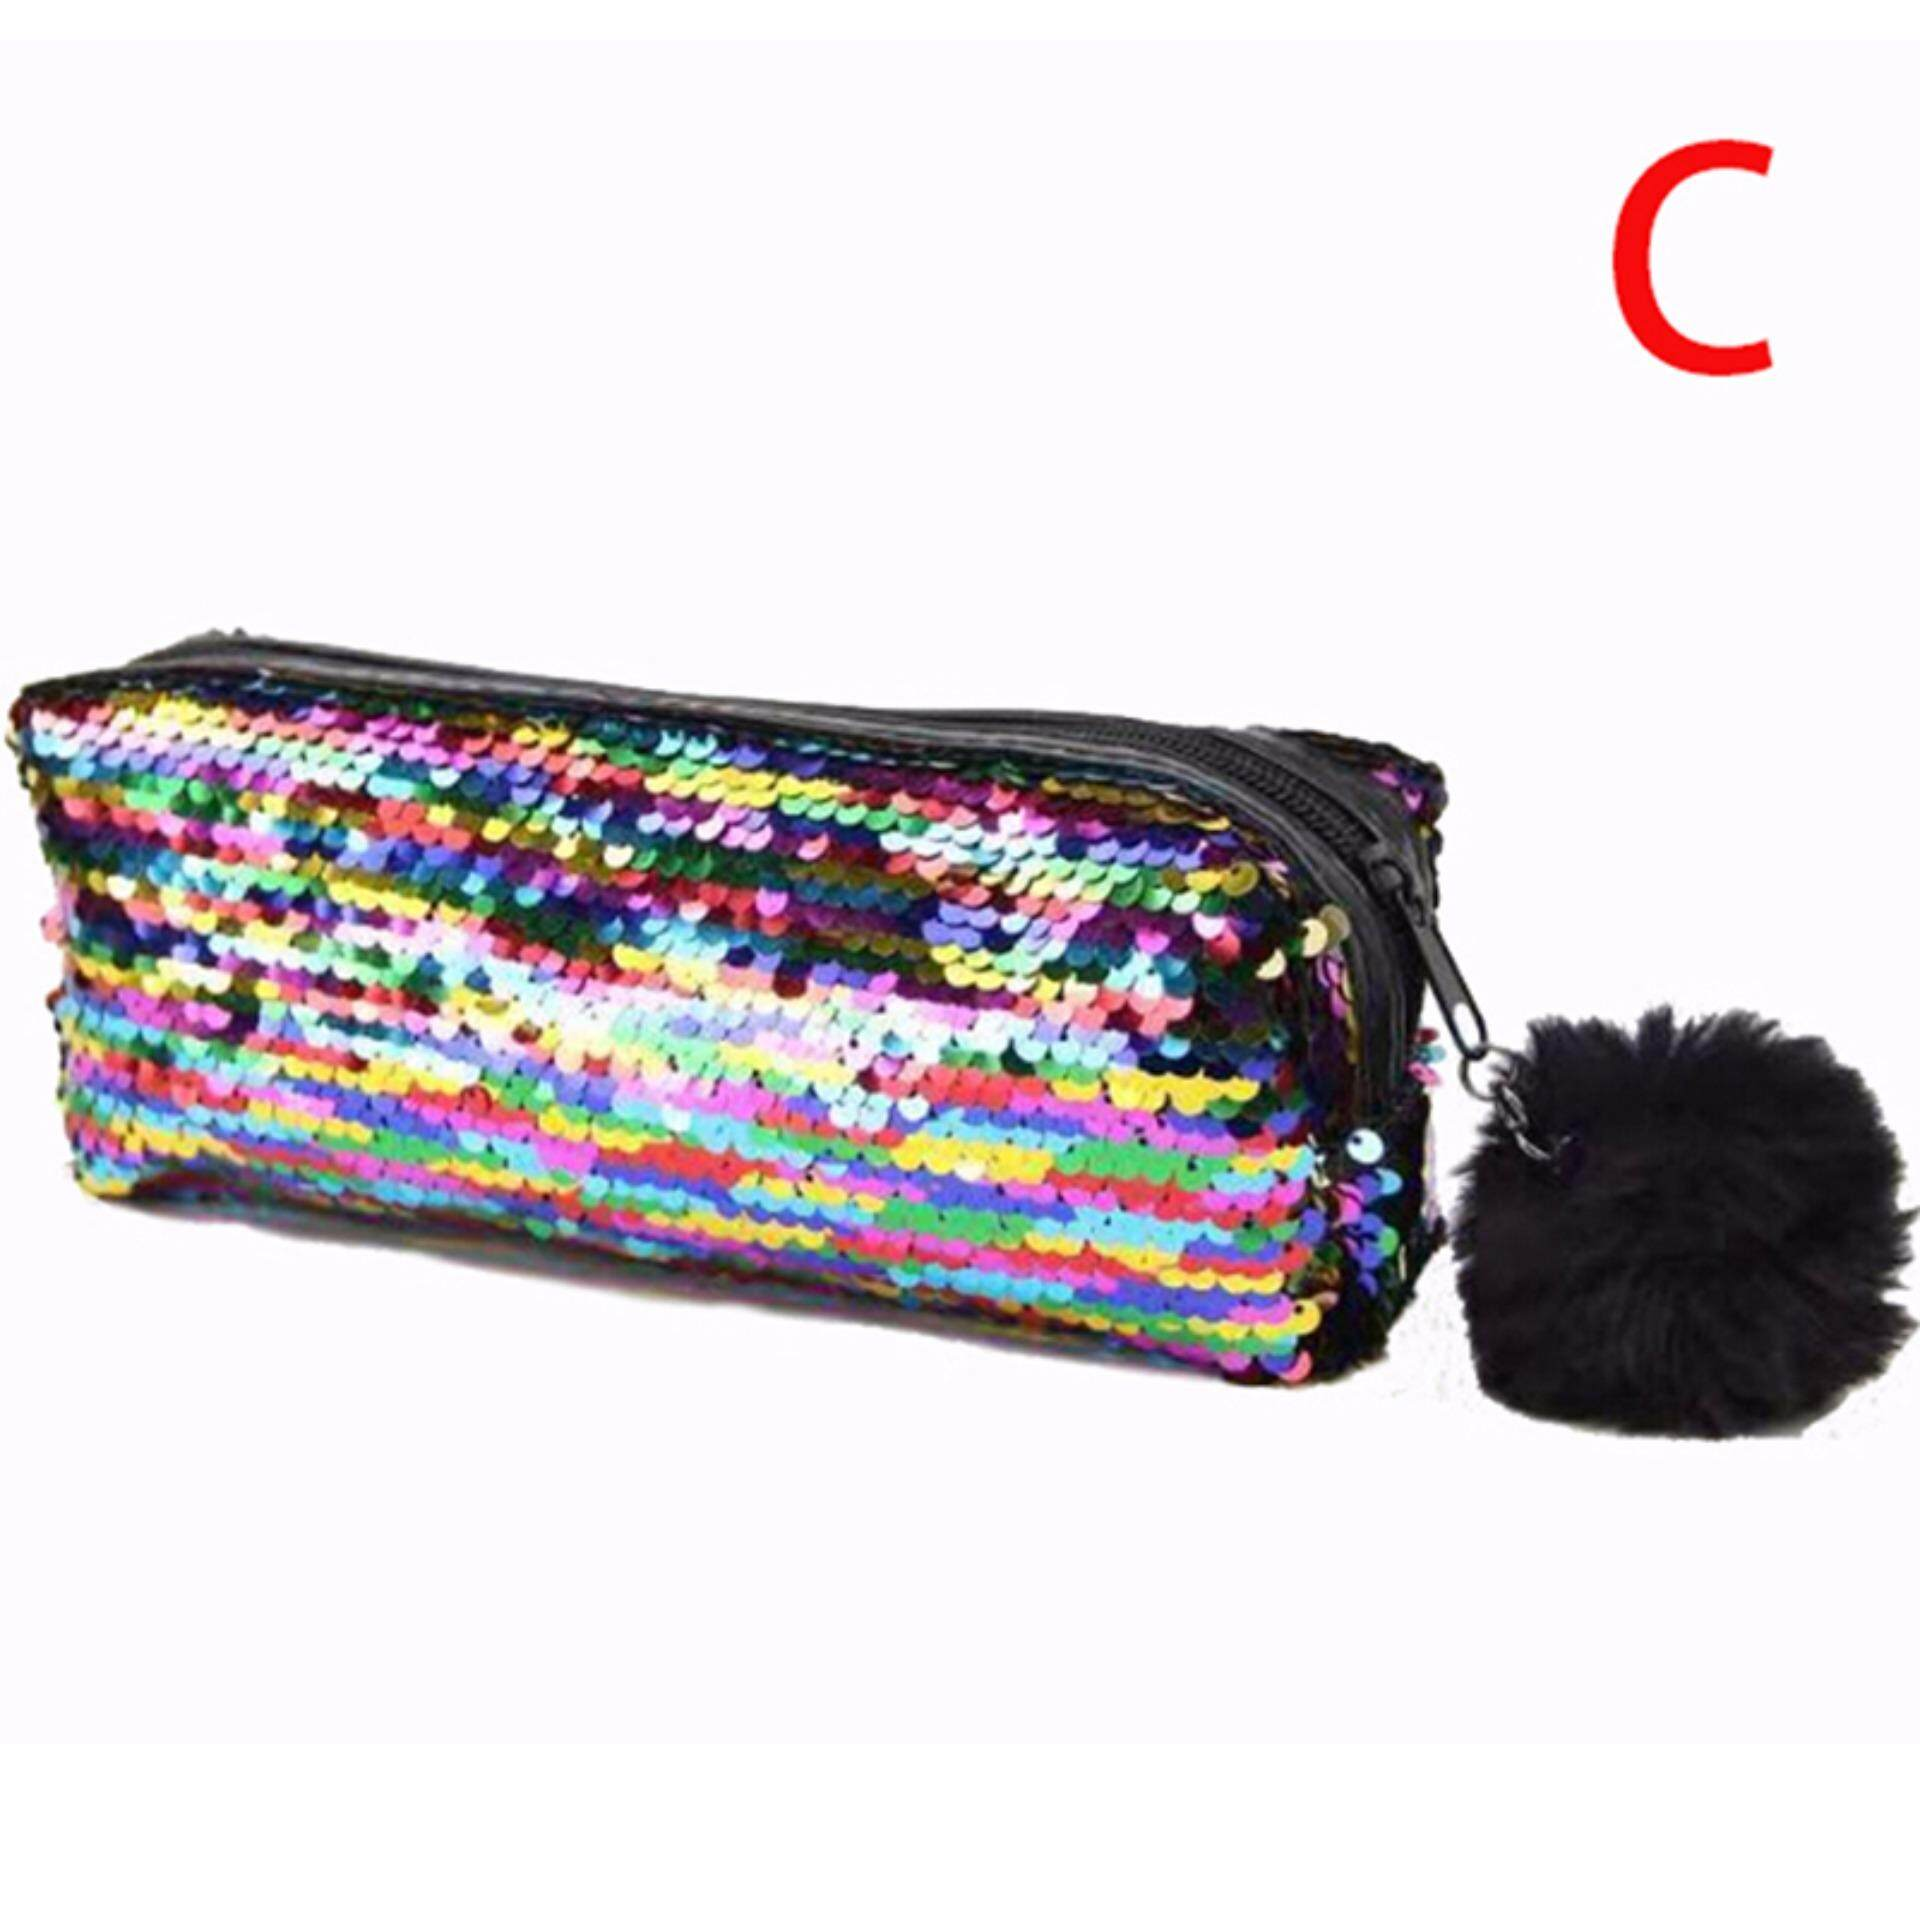 Magical House Women Mermaid Sequin Glitter Cosmetic Bag Pencil Box Coin Purse Makeup Case Gorgeous Road By Gorgeous Road.